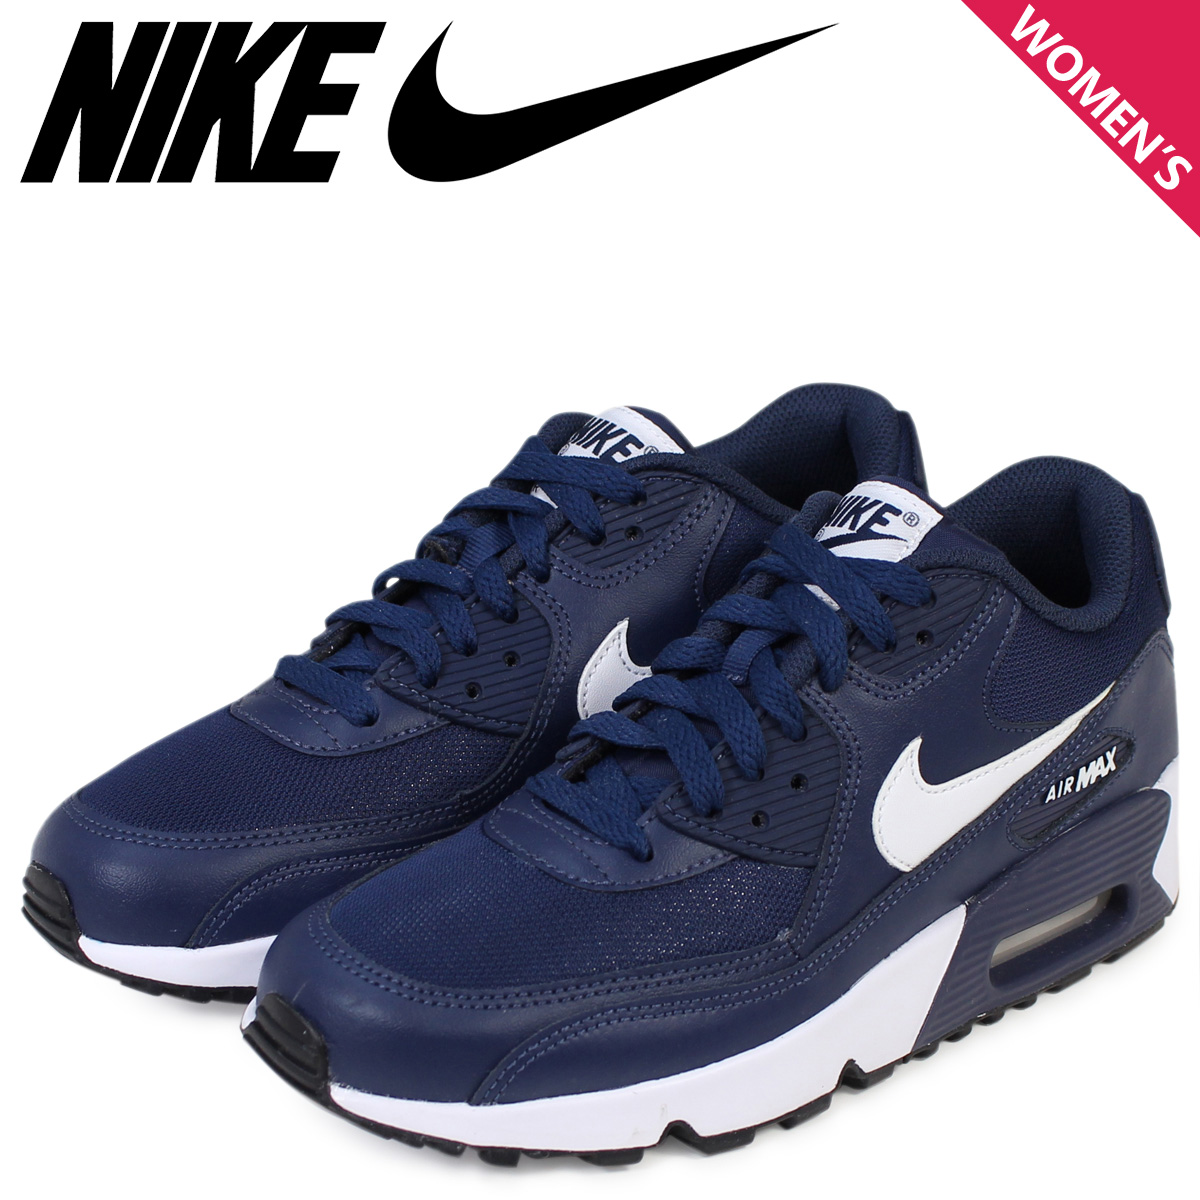 Kie Ney AMAX Lady's NIKE sneakers AIR MAX 90 MESH GS Air Max 833,418 400 shoes navy